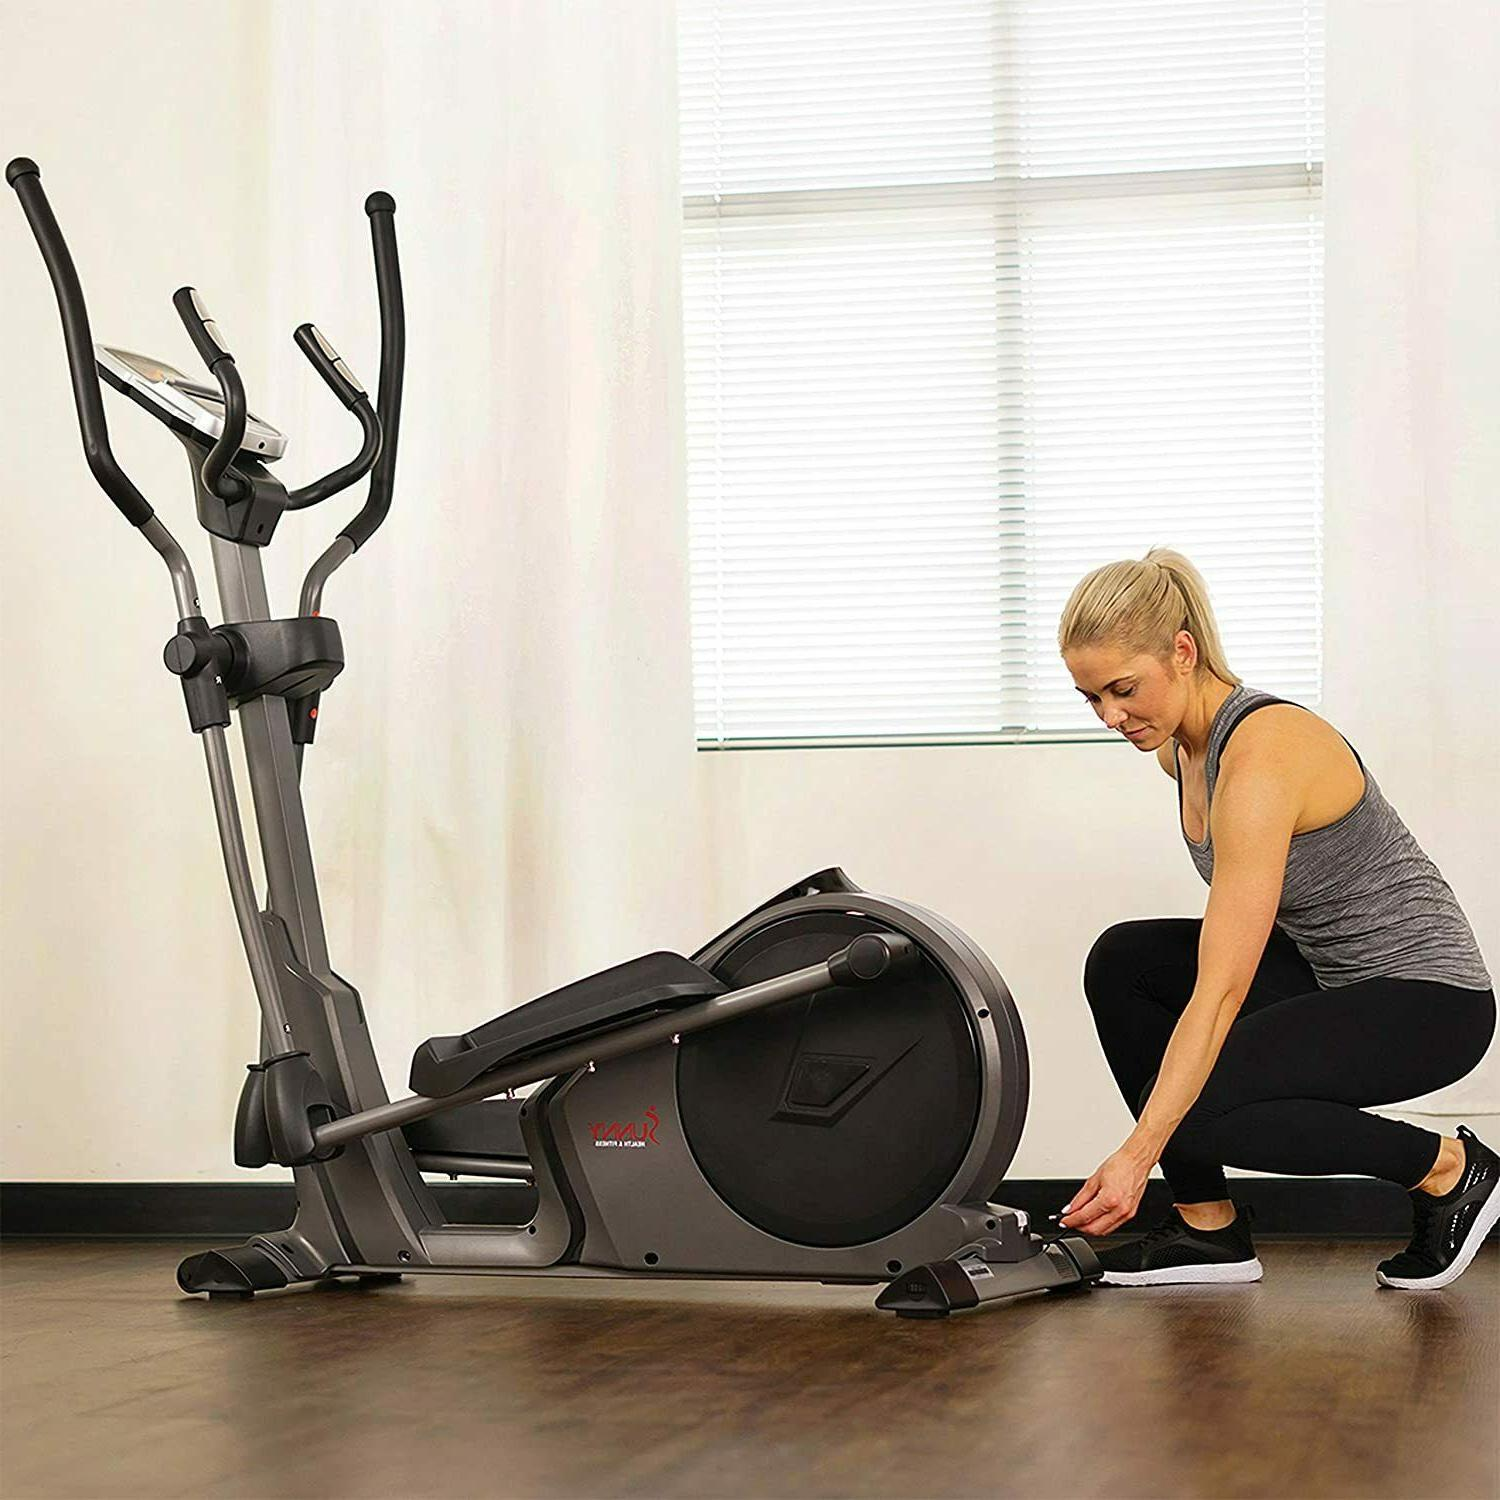 Programmable Cardio Trainer w/24 Programs-Delivered apx 5-10 days